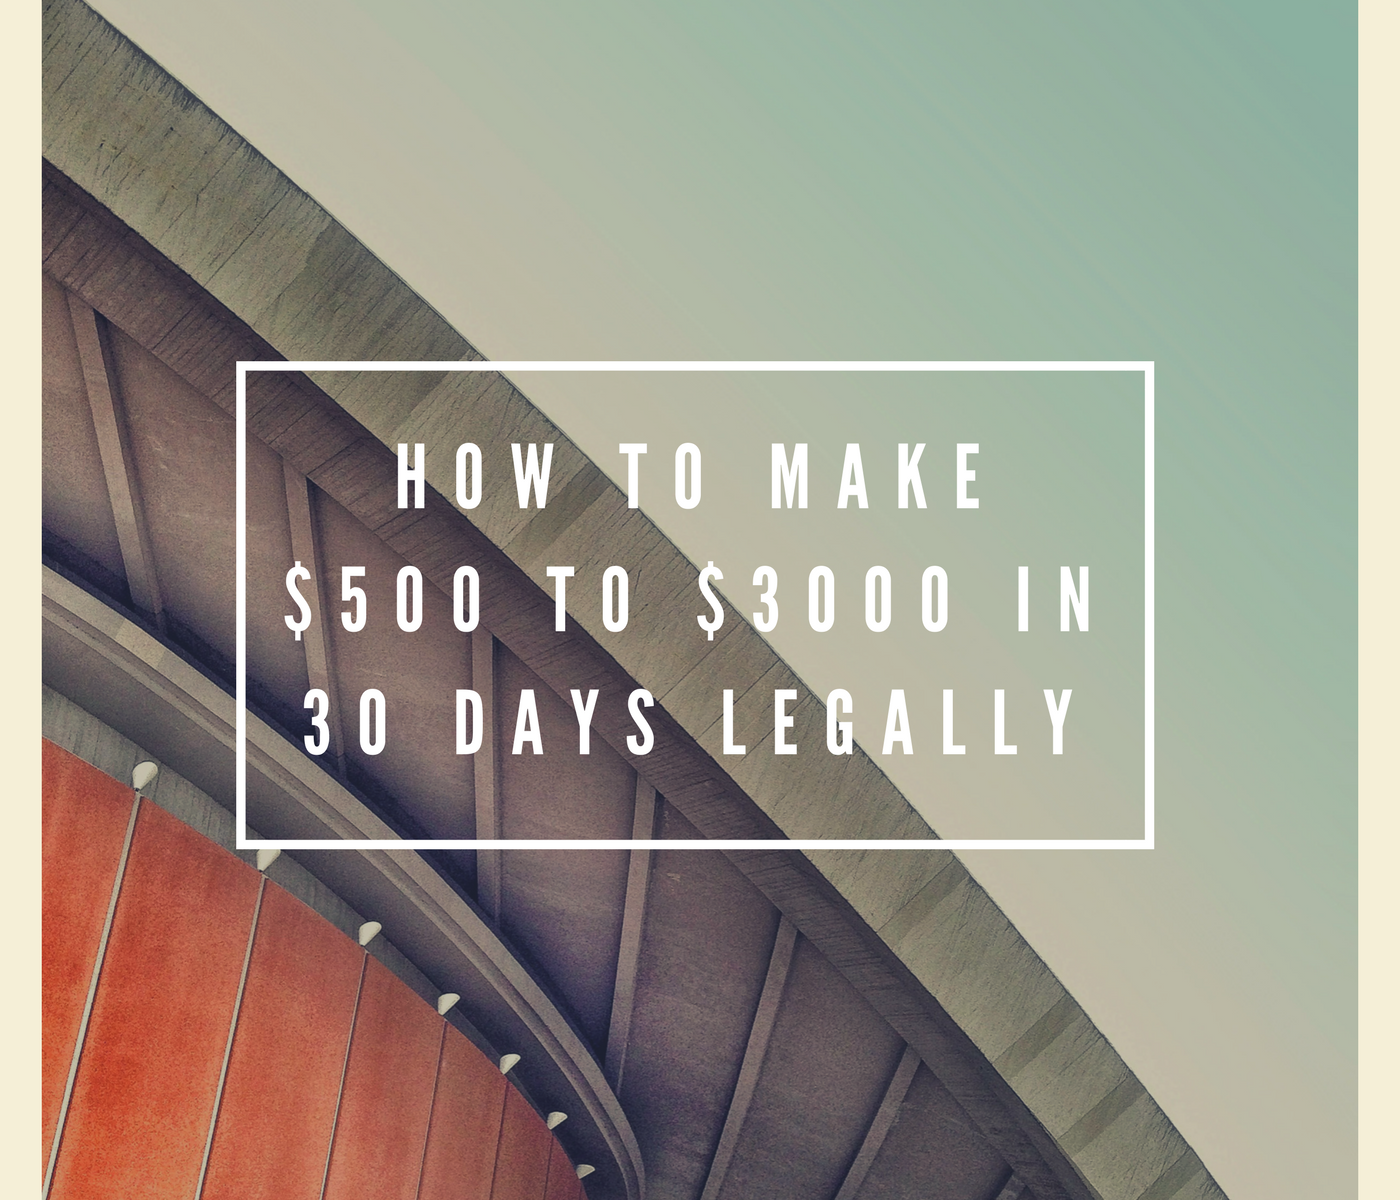 How to Make $500 to $3000 in 30 Days Lega